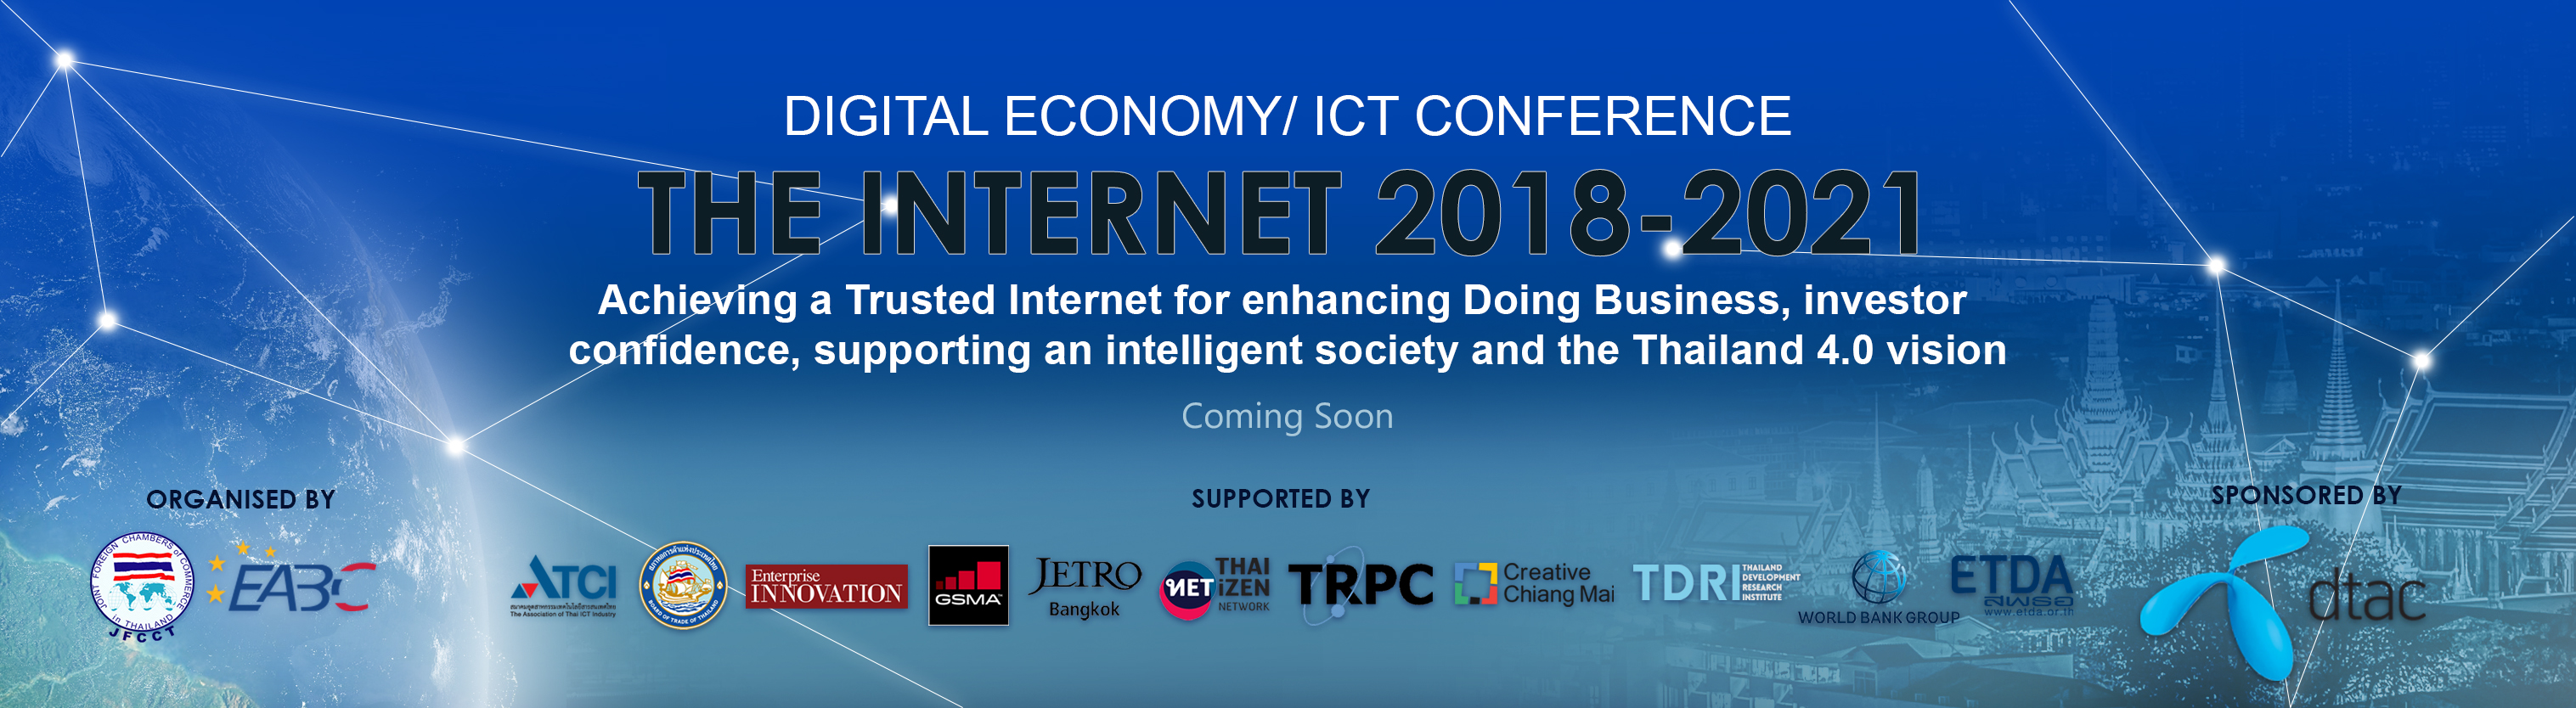 JFCCT/EABC Conference: 'The Internet 2018-2021' | Joint